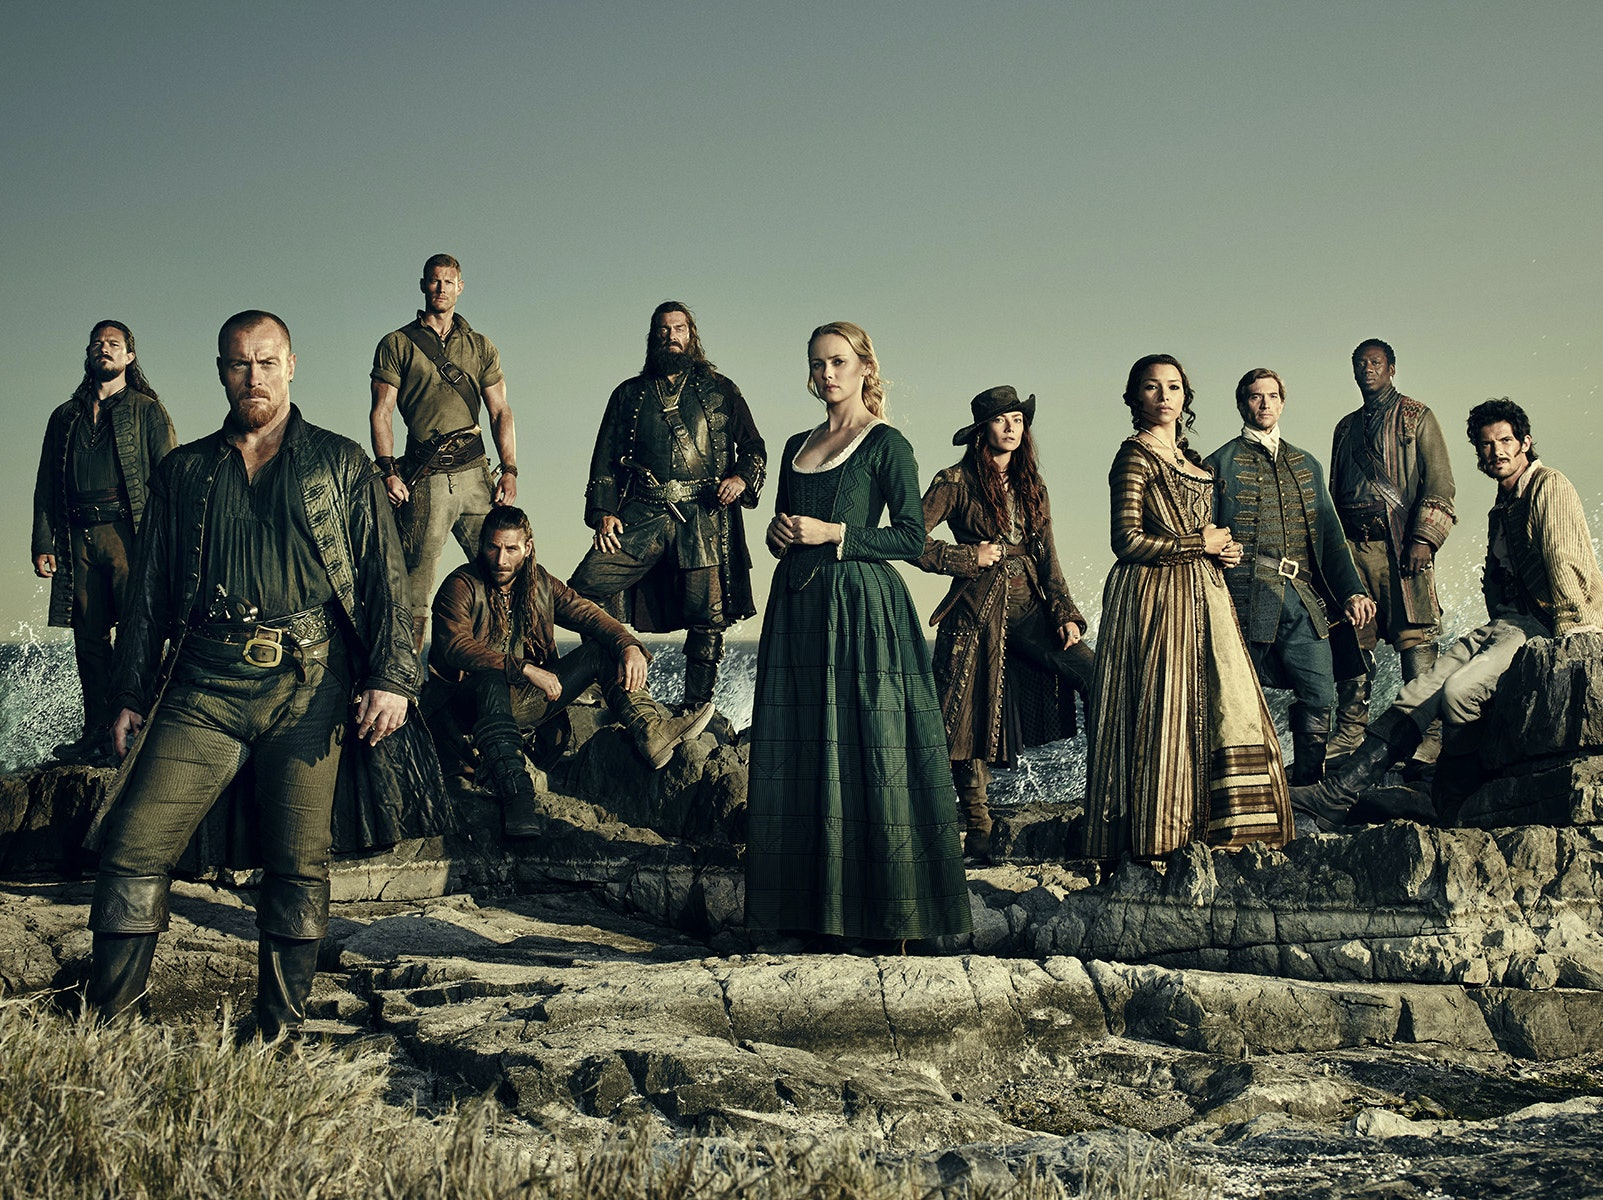 The Latest 'Black Sails' Casualty Speaks Out